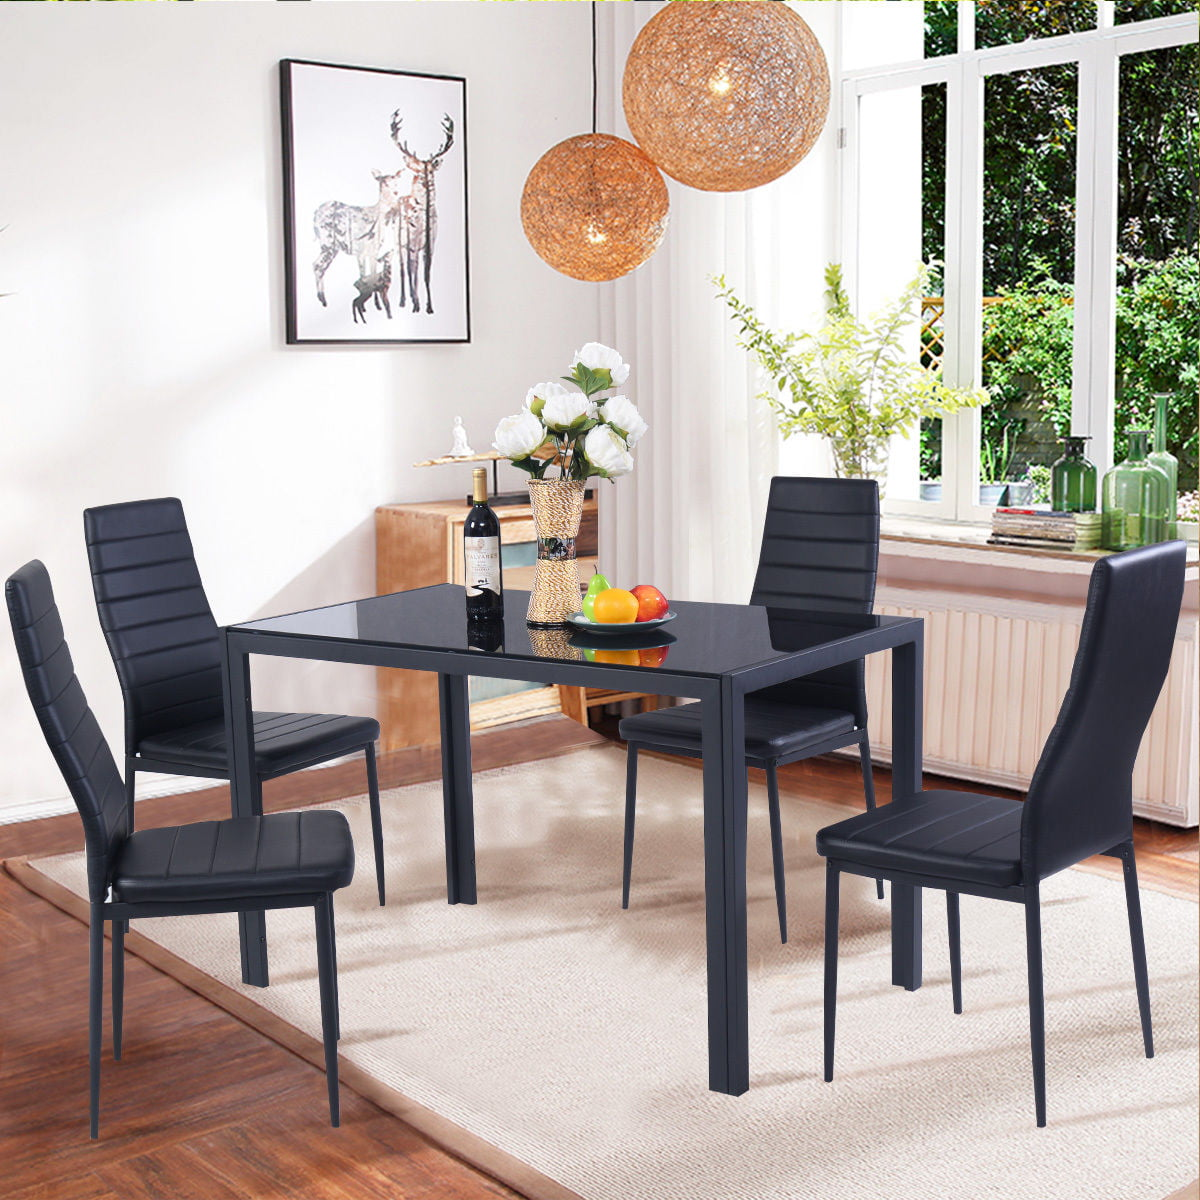 Dining Table Set costway 5 piece kitchen dining set glass metal table and 4 chairs